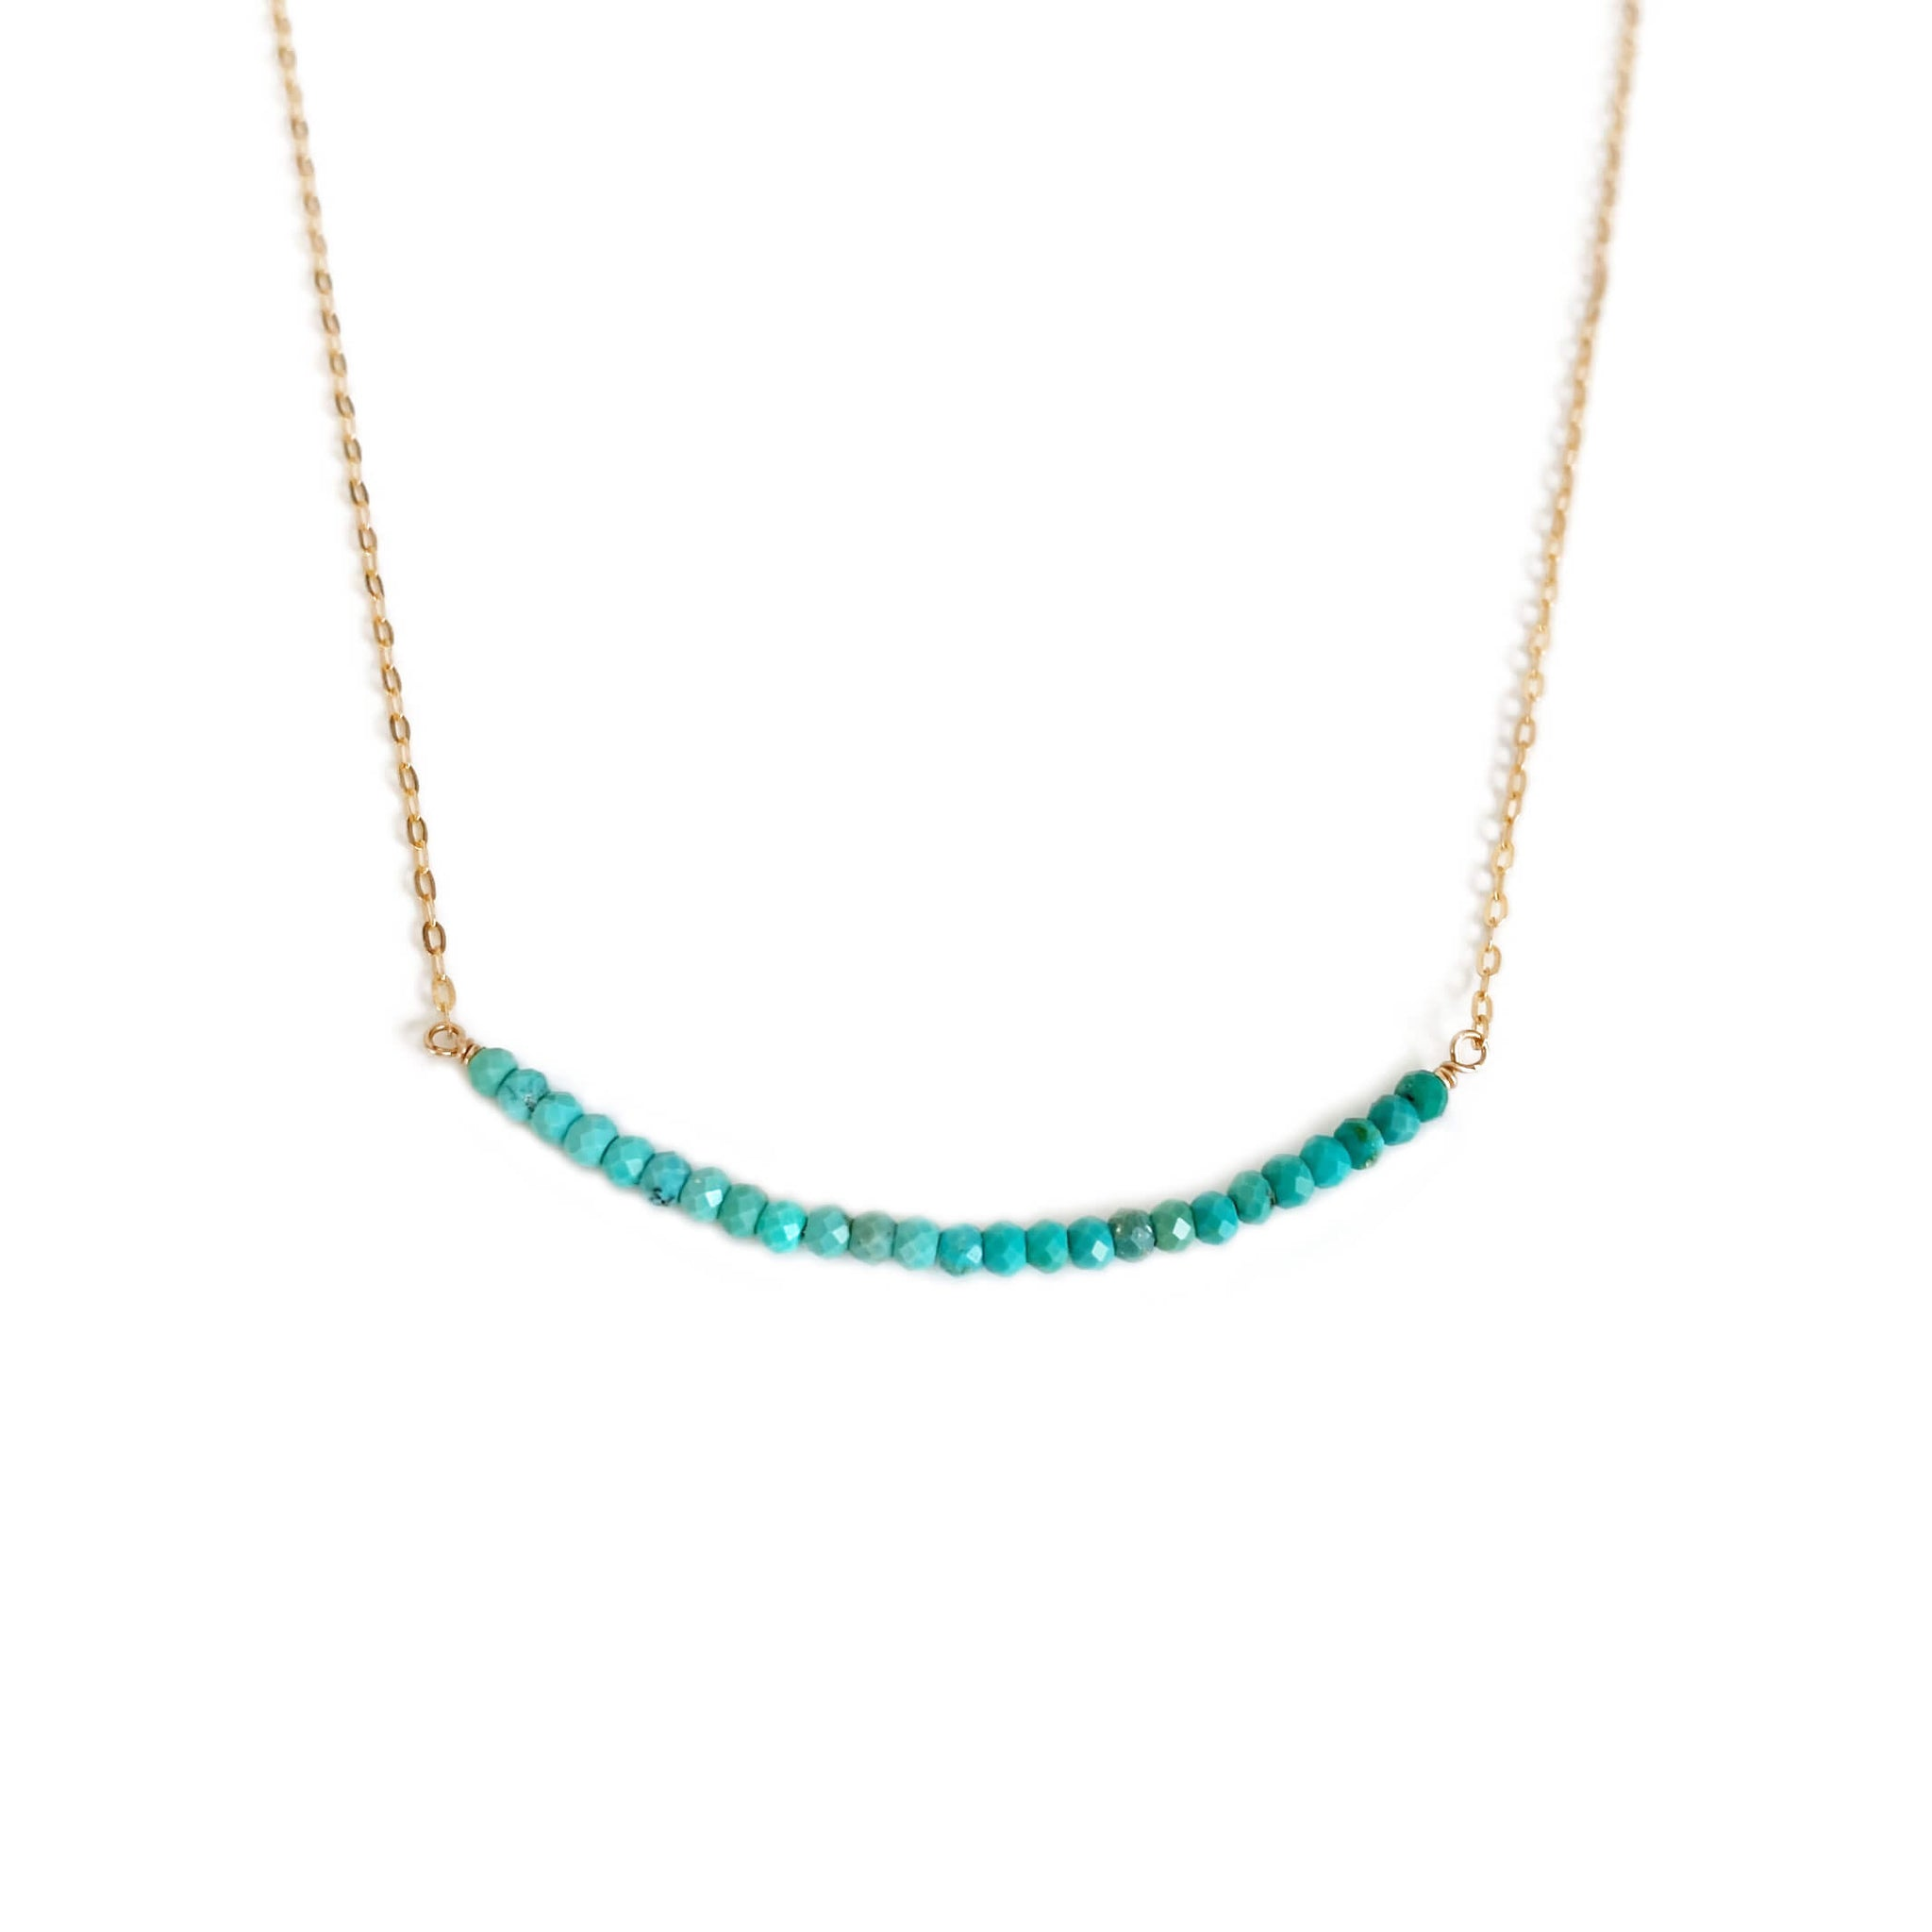 Ombre Turquoise necklace is made of real turquoise beads from Mexico and 14k solid gold chain.  It can also be made in sterling silver or gold filled chain.